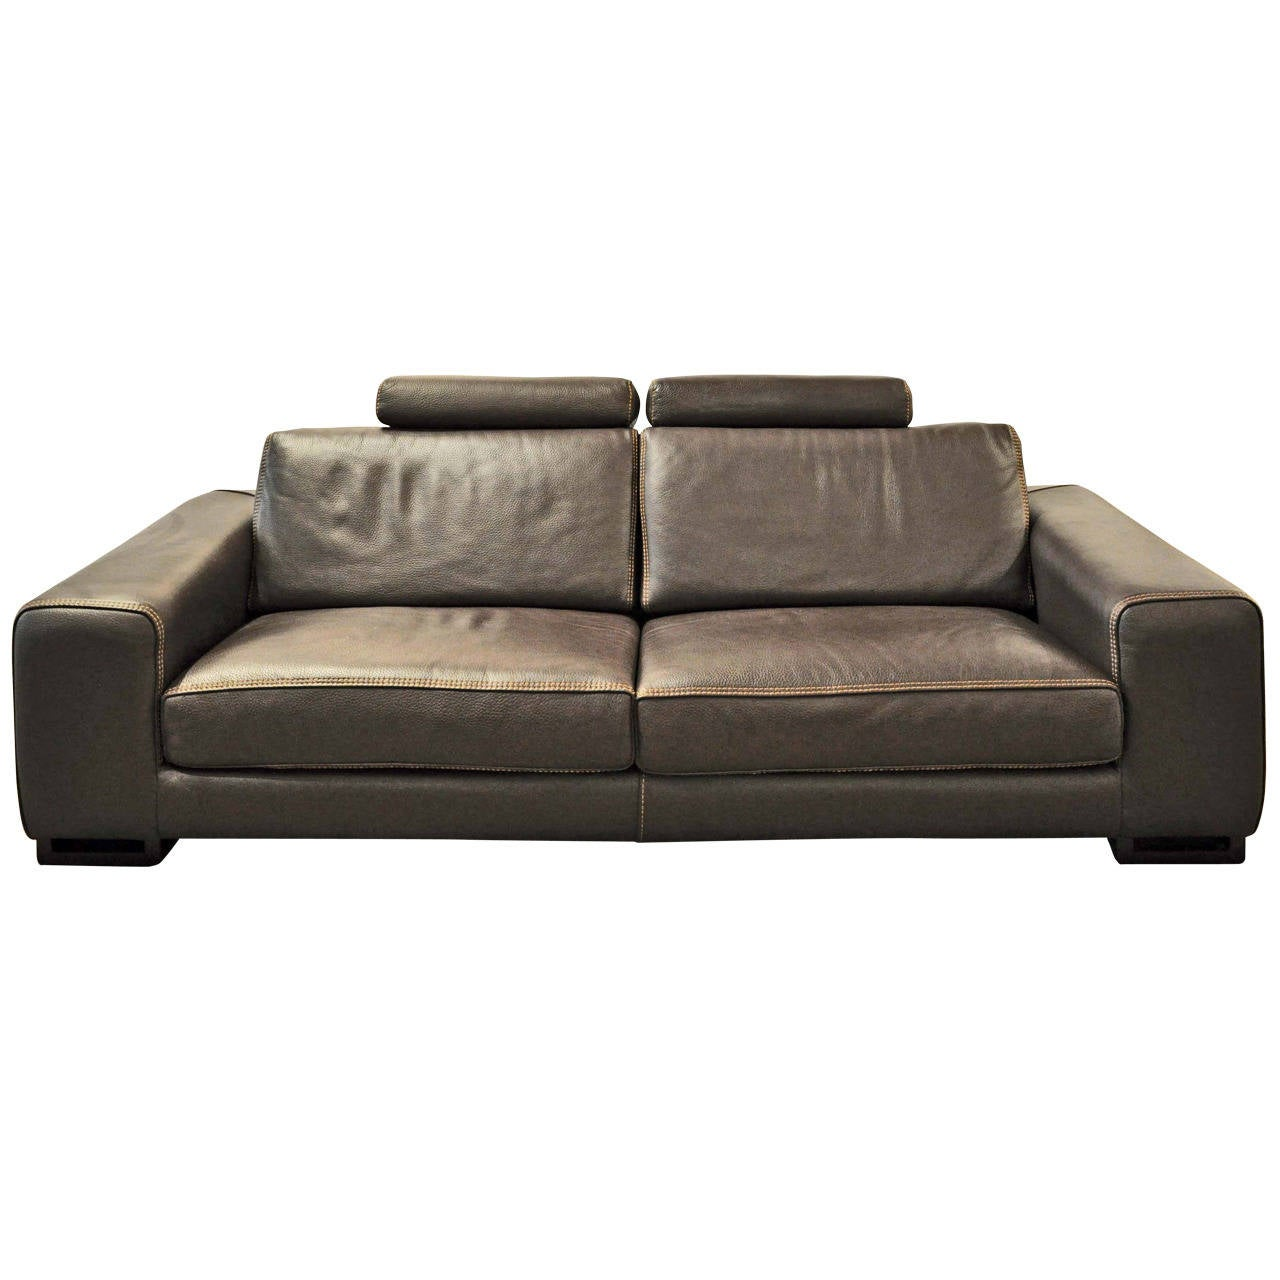 Roche Bobois Chocolat Upholstered Leather Sofa At 1stdibs